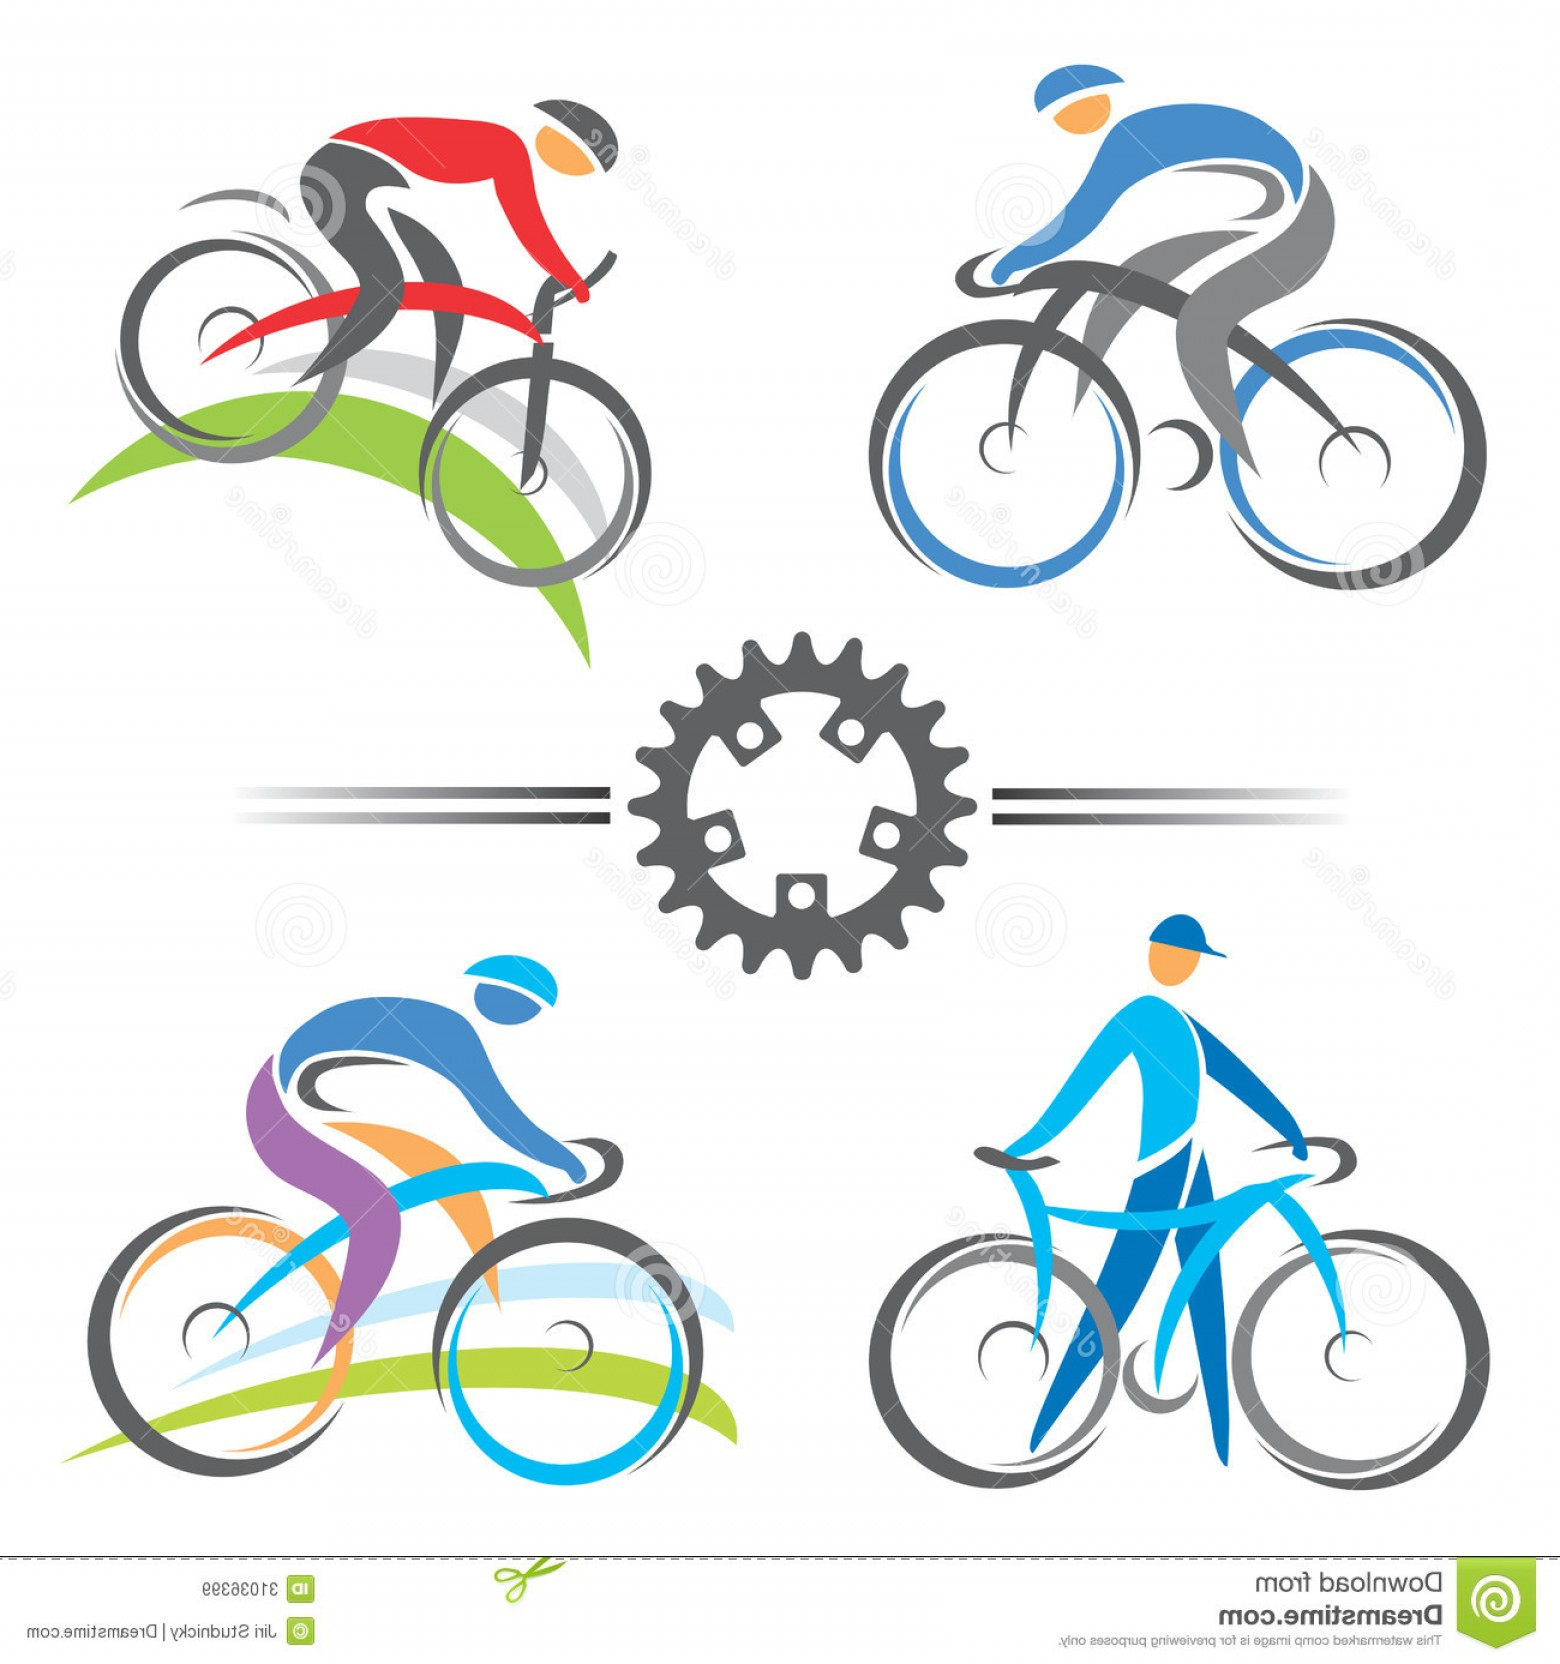 Indoor Cycling Bike Vector: Royalty Free Stock Images Cycling Icons Colorful Mountain Biking Vector Illustrations Image